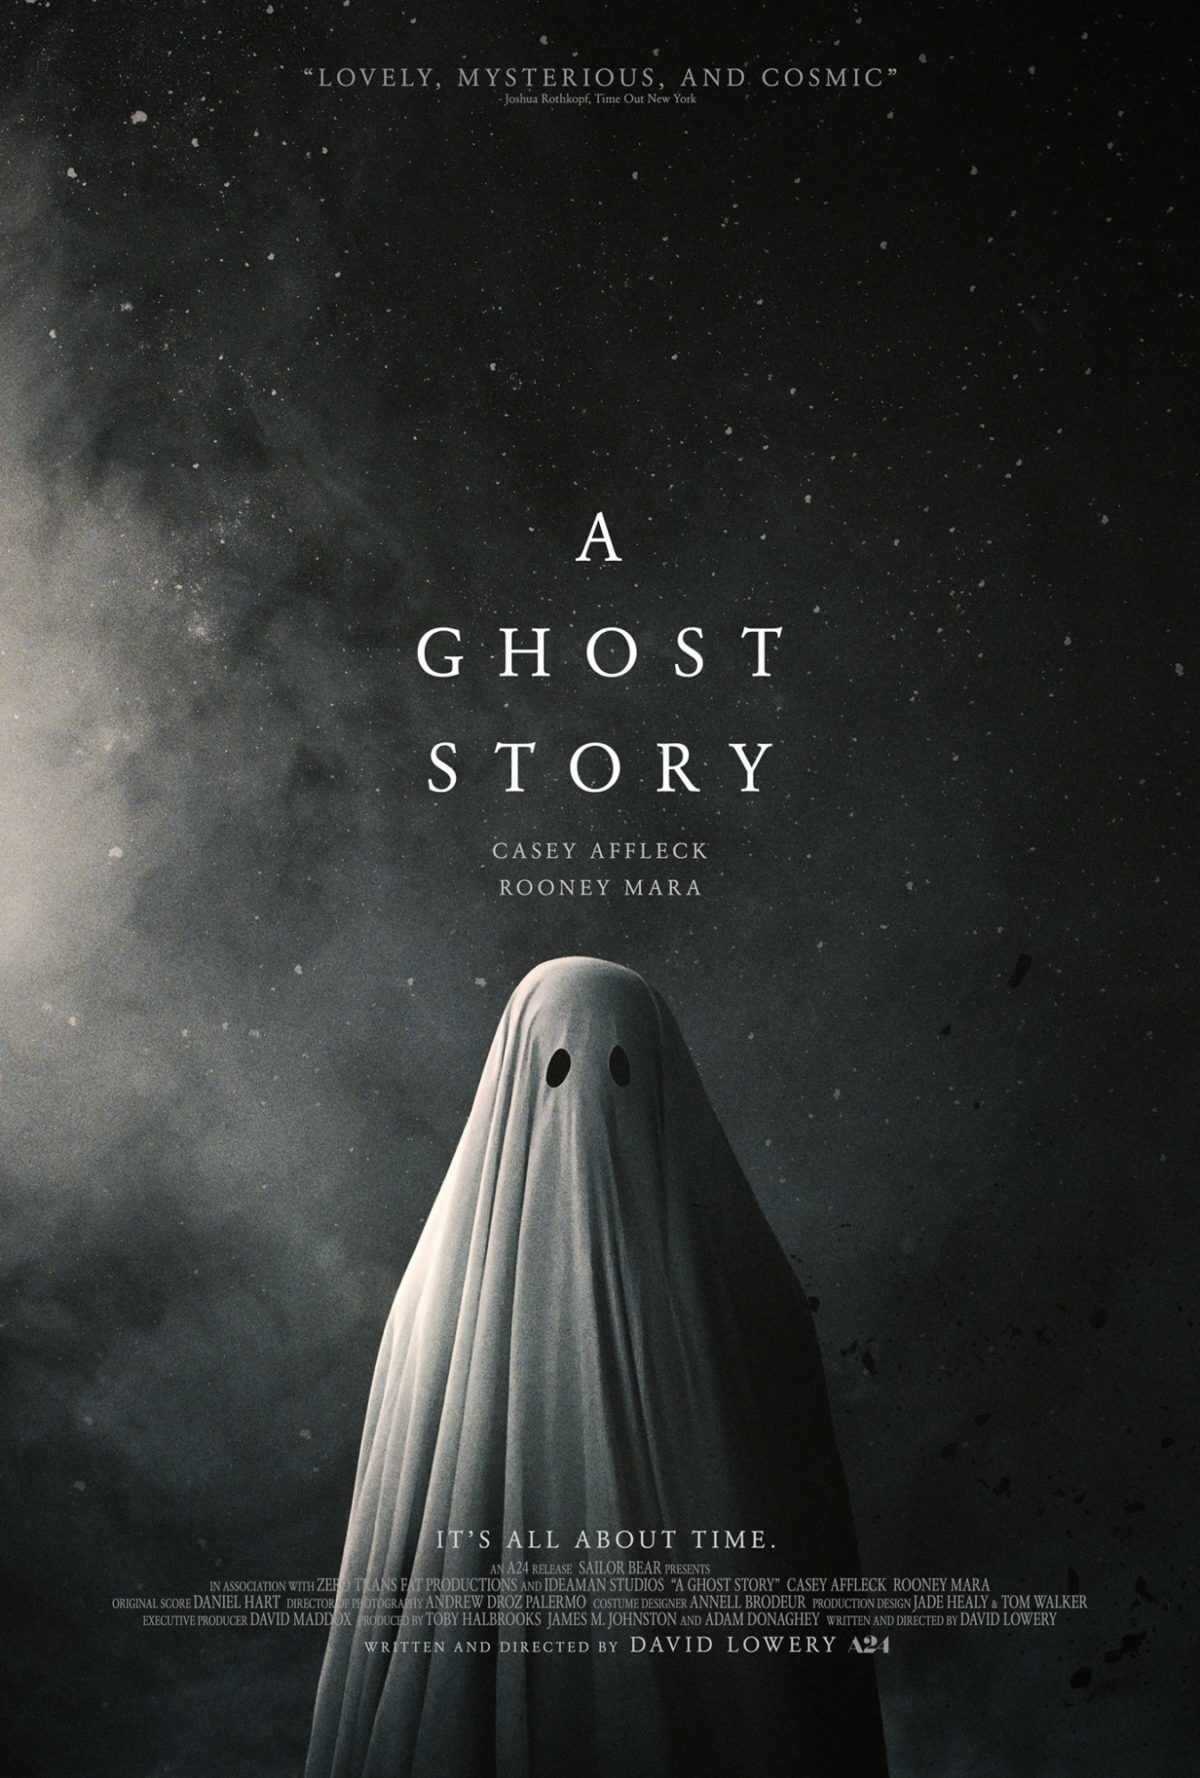 A Ghost Story 170823 172822